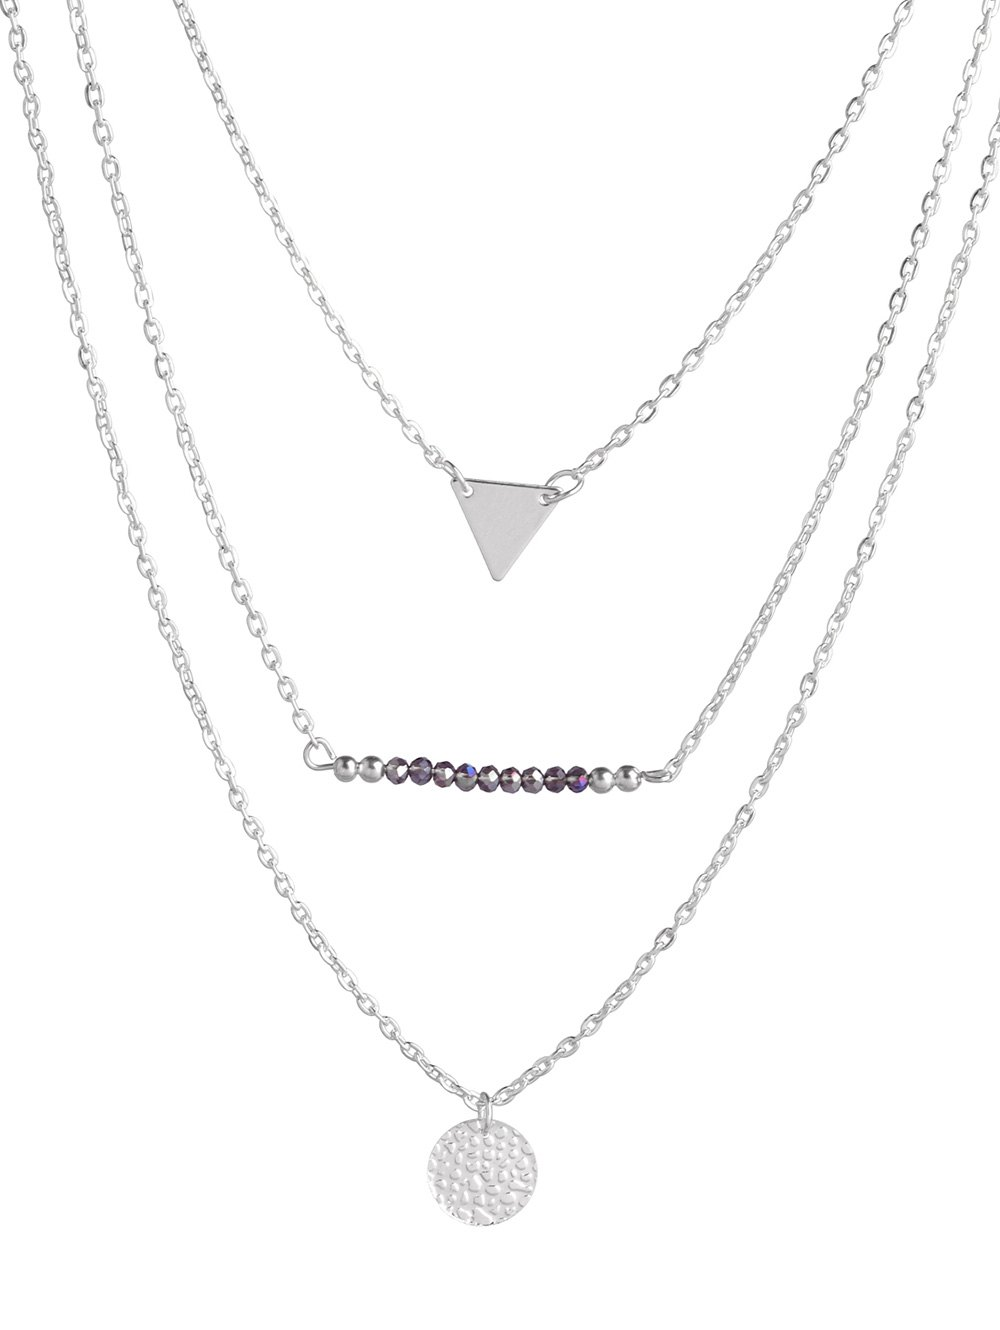 Triangle Coin Beads Layered Necklace